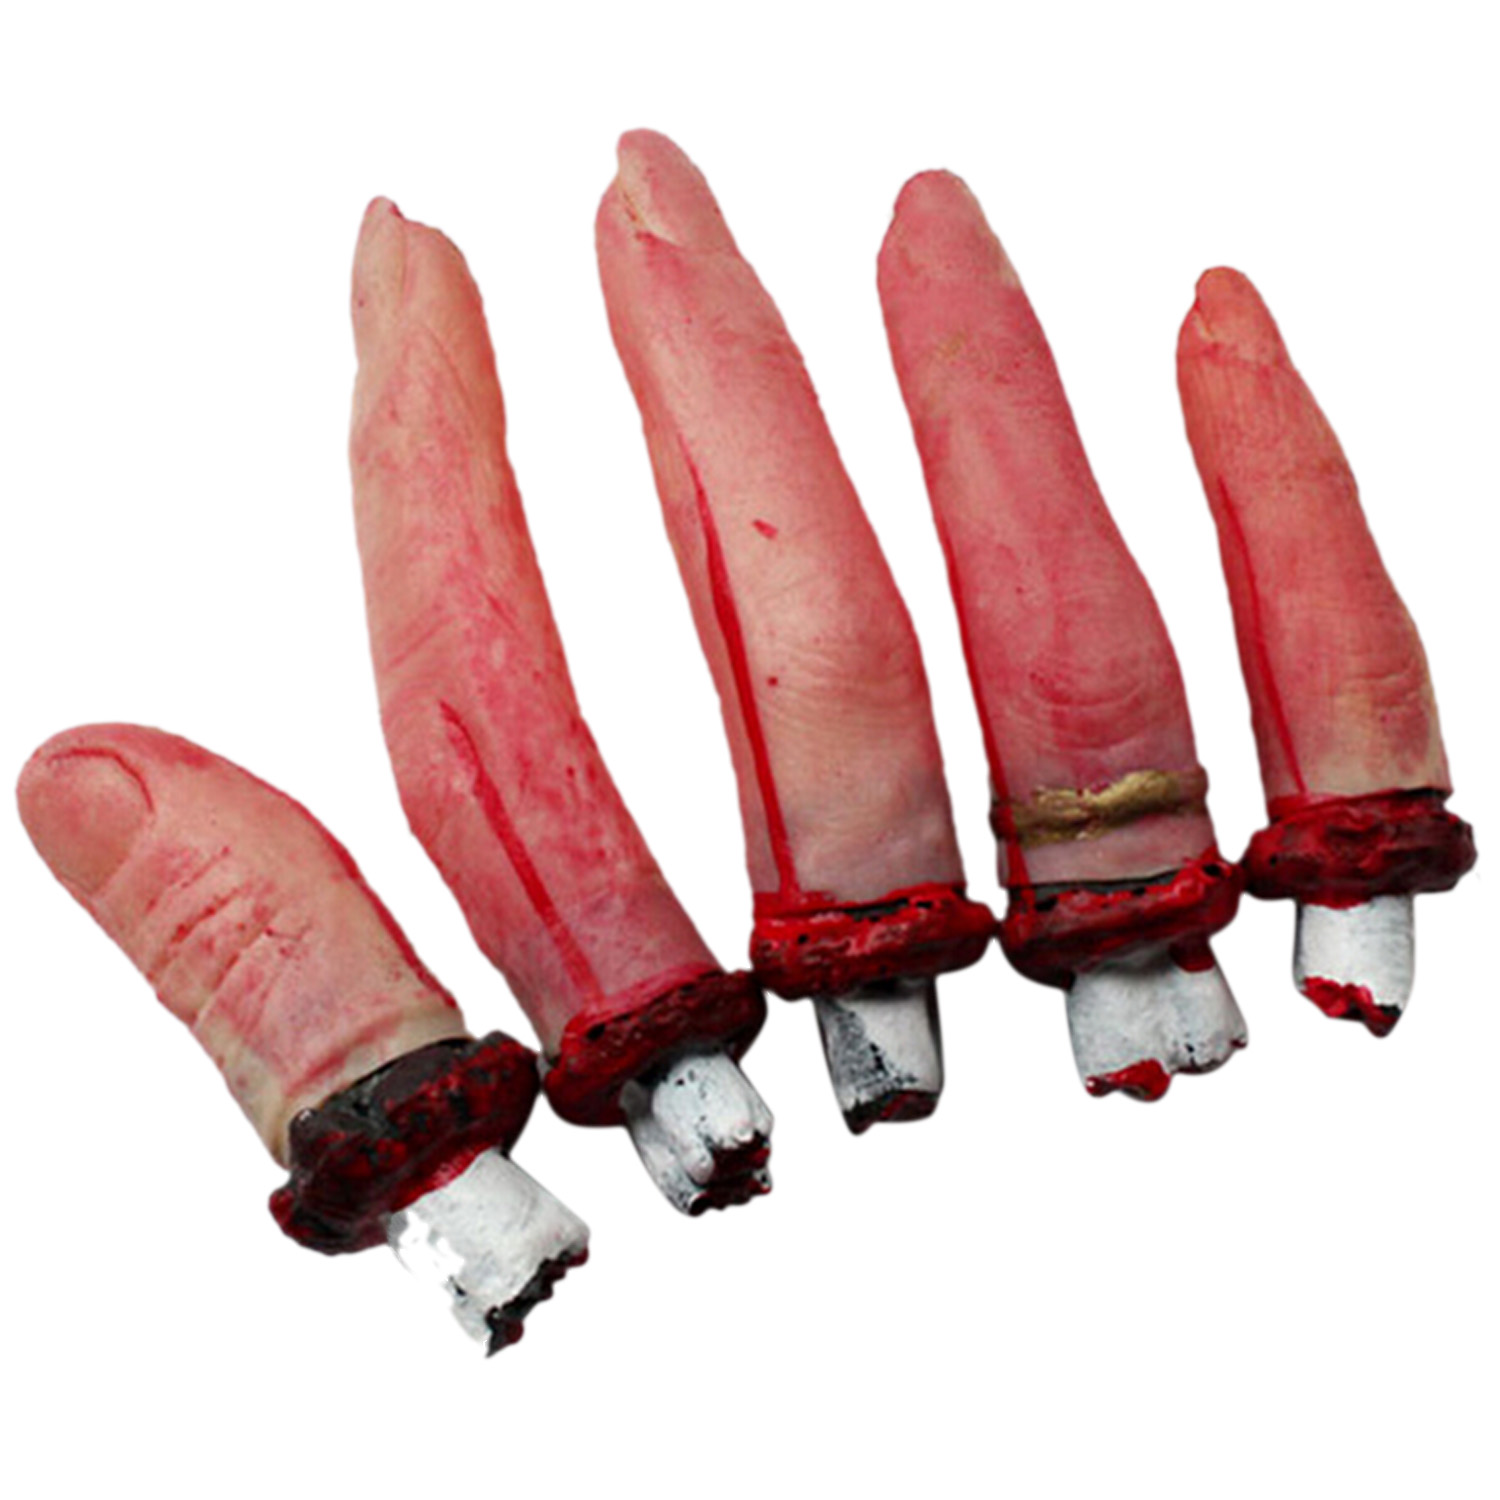 Satkago Halloween Props Product Outfit Party Cosplay Prank Toys 5 Severed Fingers